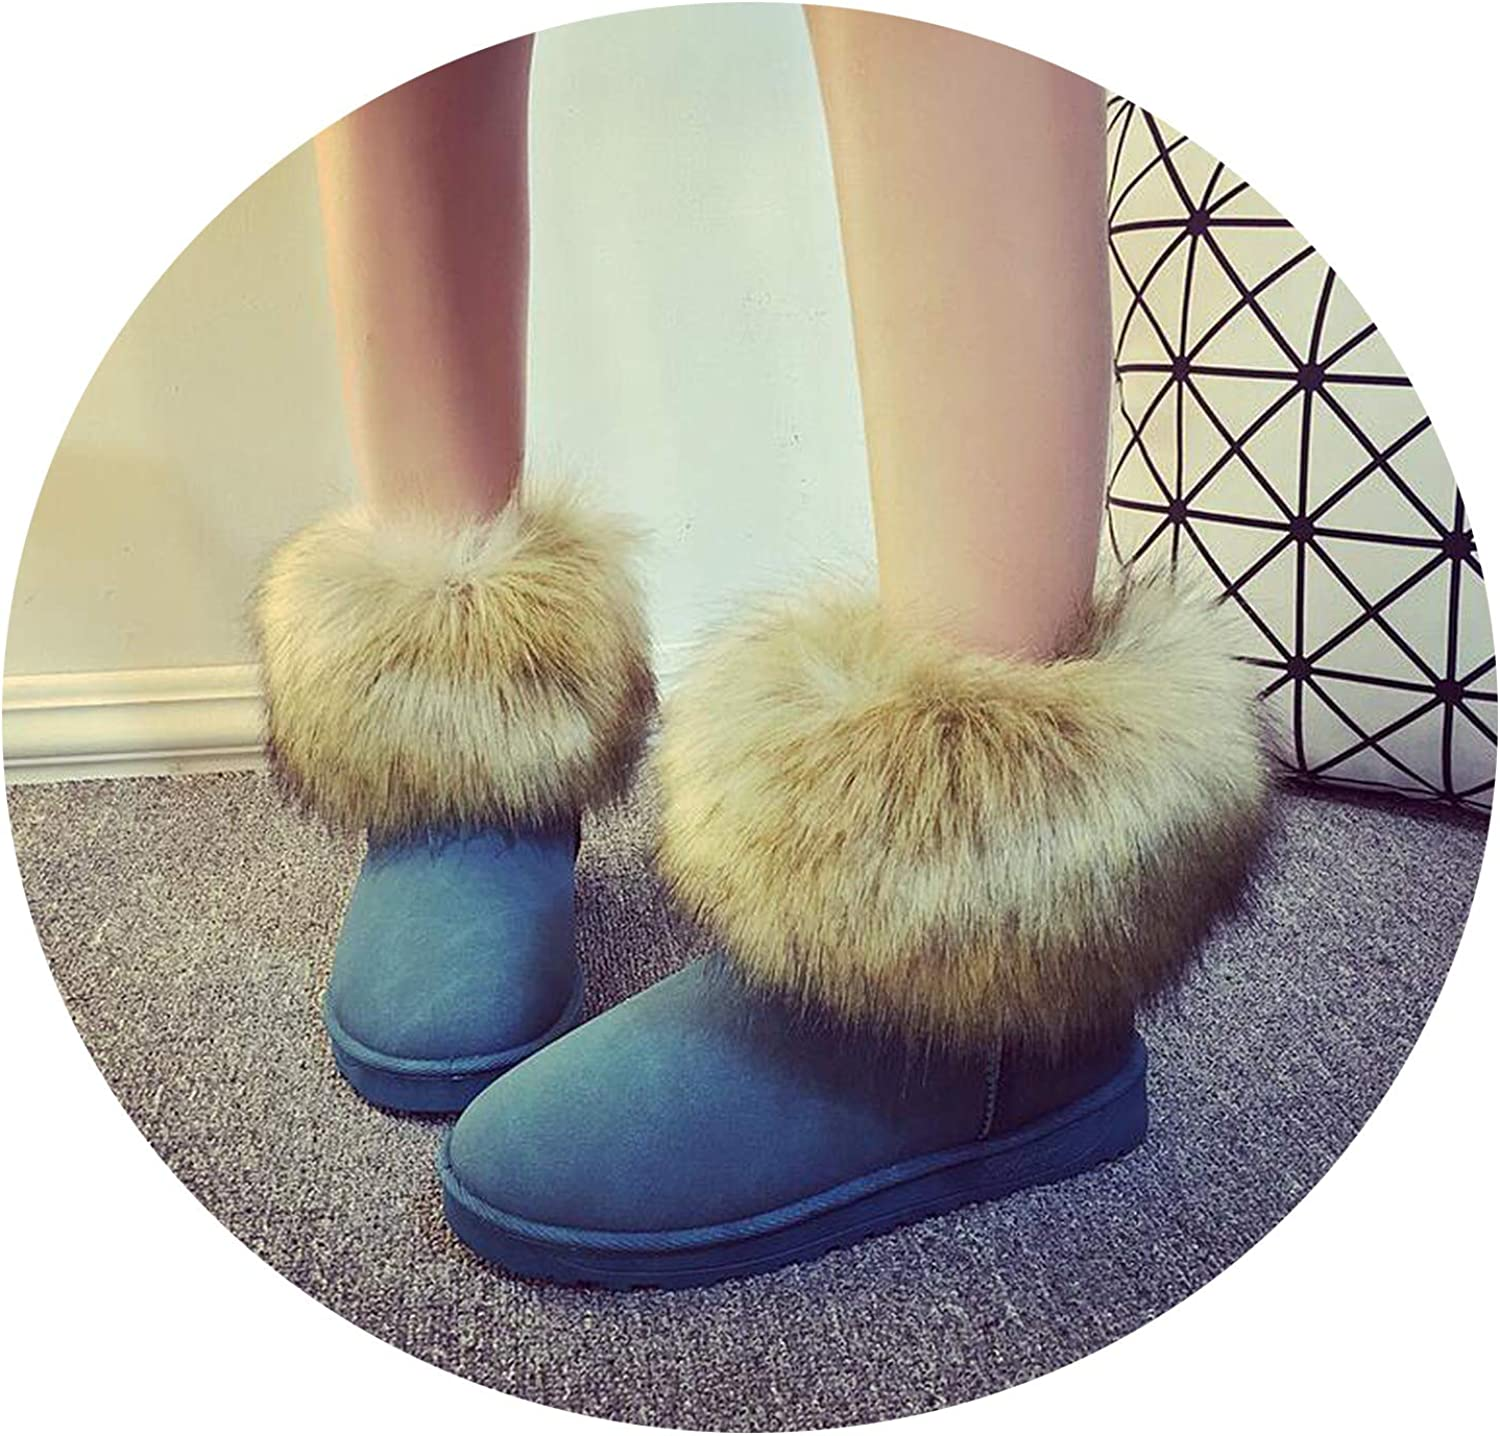 Good-Memories Women Fashion Fox Fur Warm Cotton Short Boots Waterproof Non-Slip Flat shoes